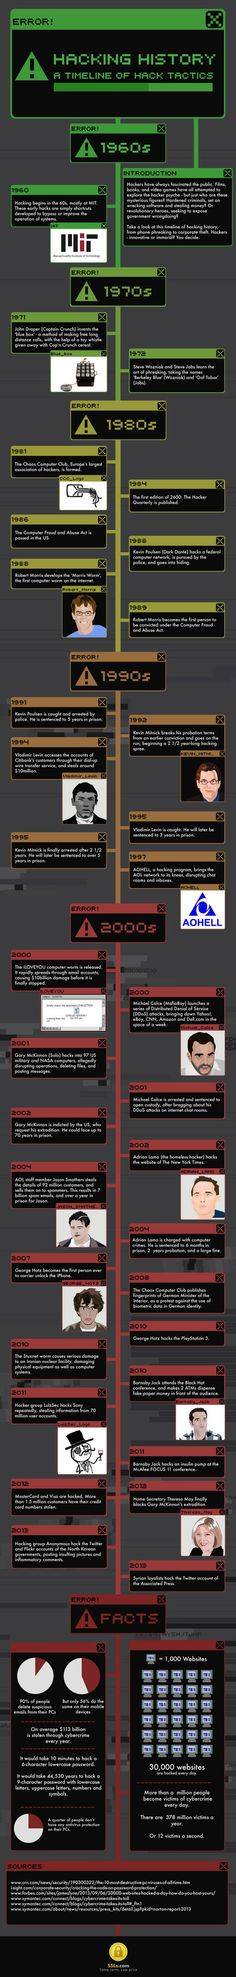 "Hacking History Infographic - Best Infographics   ""Tweet Tweet We hear a lot about hackers these days. But they have been around for a very long time. The good folks at SSLs.com have put together an infographic that covers some of the most important moments in computer hacking history:"" [...]"